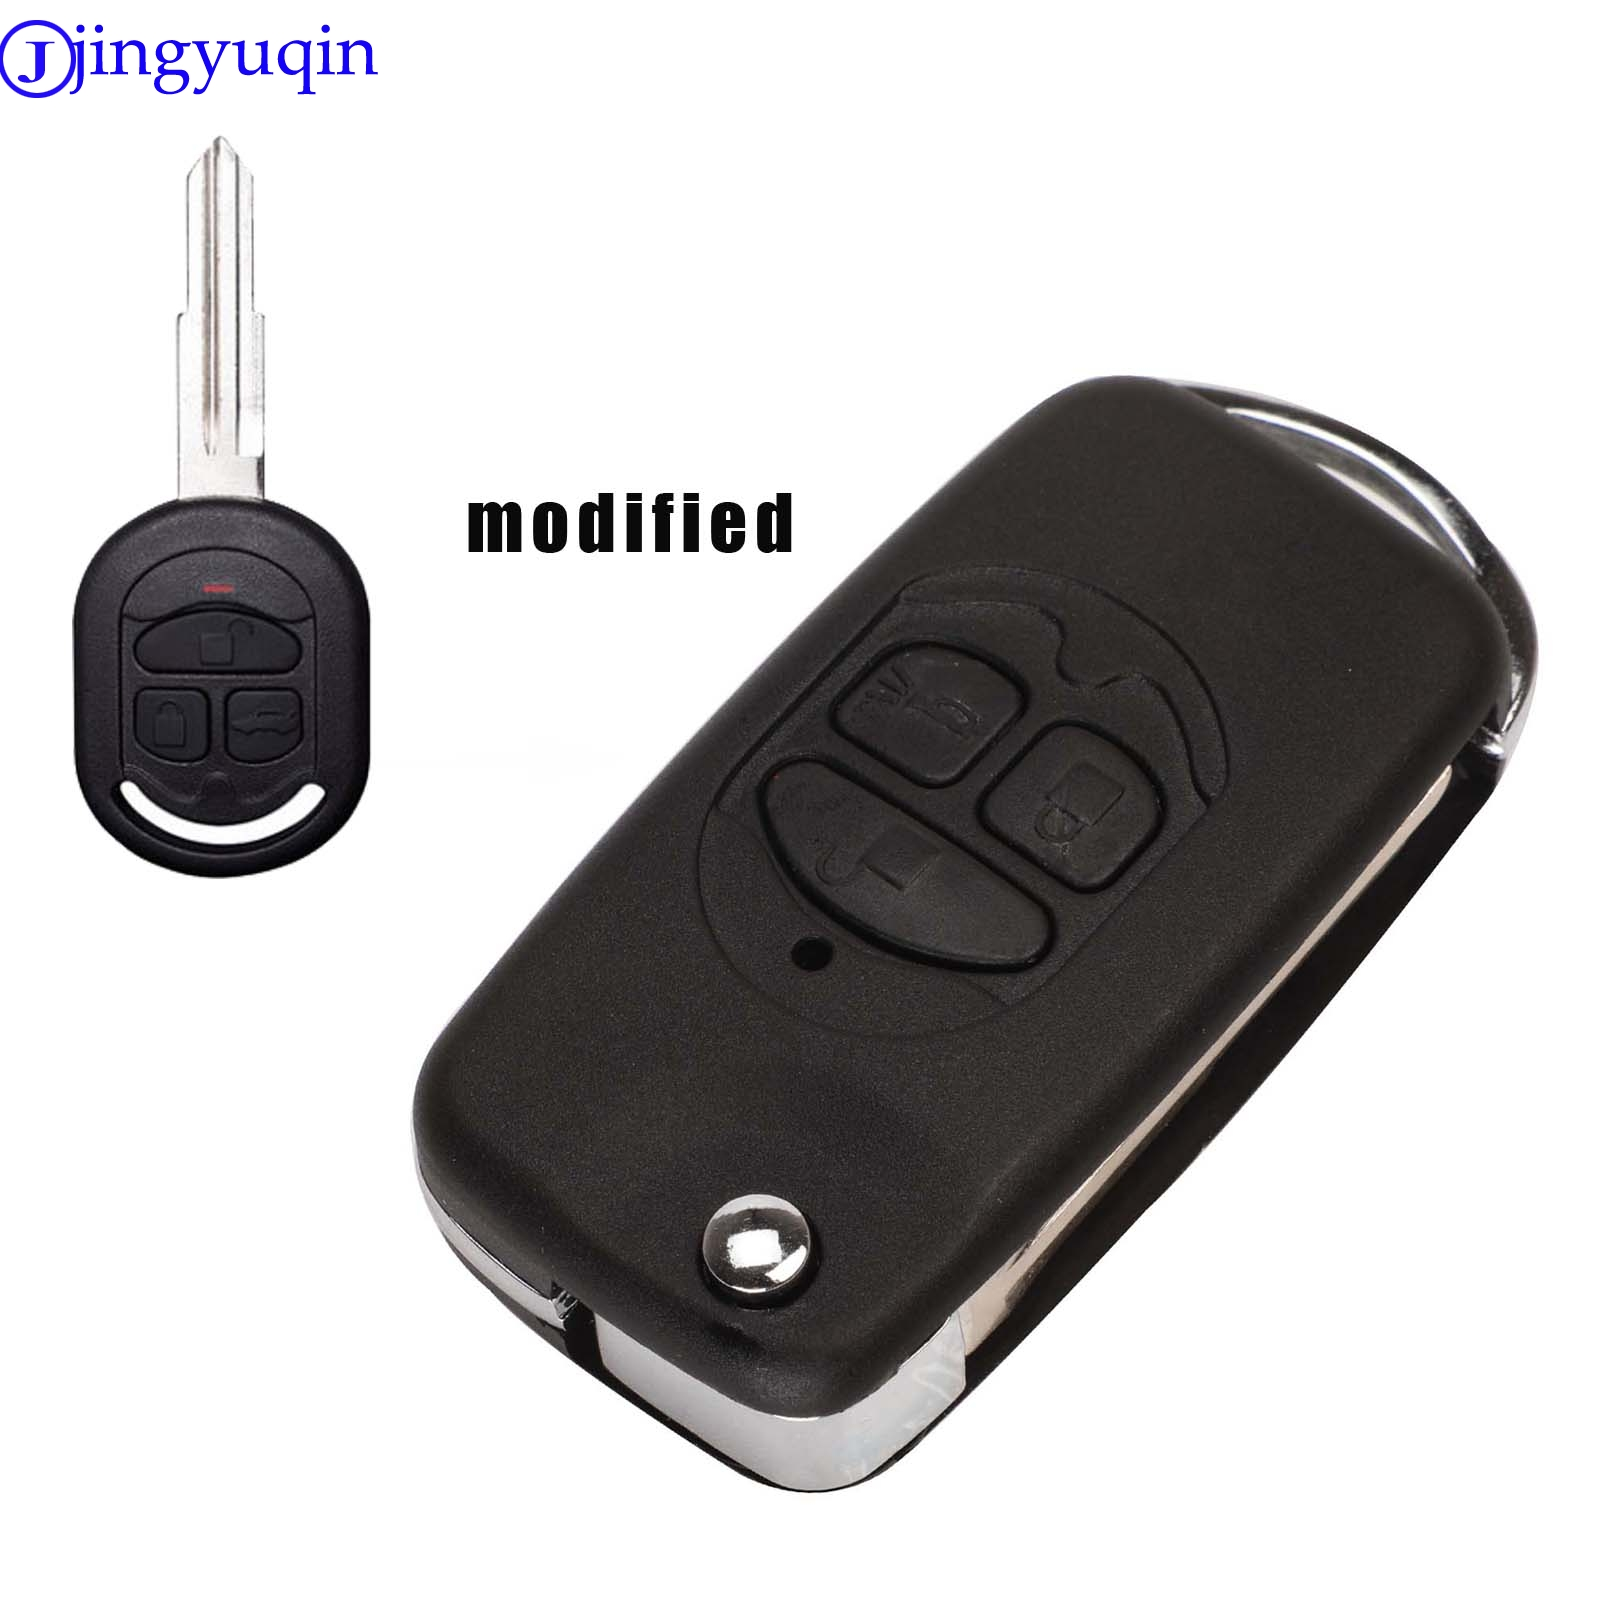 Lmproved folding remote control key case for Chevrolet Lacetti / Optra / Nubira vehicle pocket alarm 2005 2006 2007 2008 2009(China)